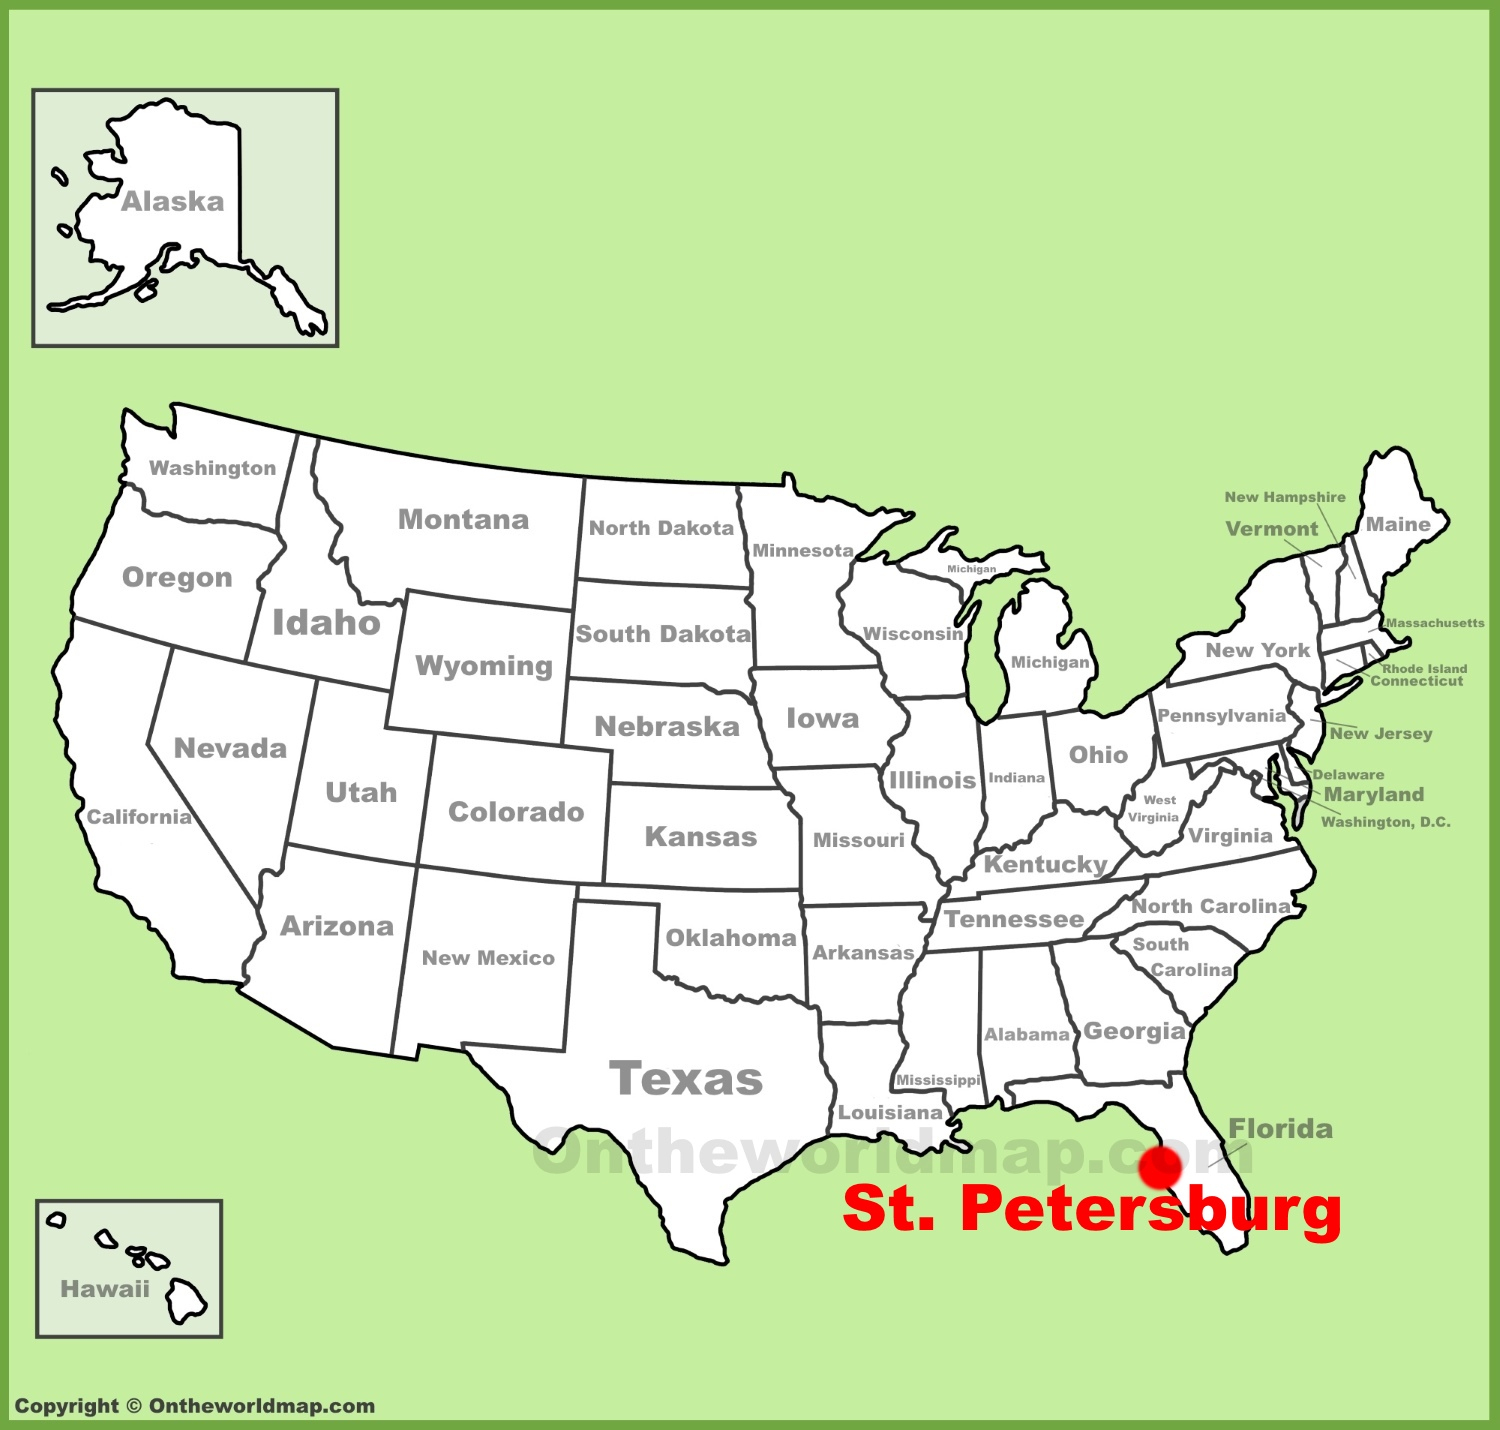 St. Petersburg Maps | Florida, U.s. | Maps Of St. Petersburg - City Map Of St Petersburg Florida